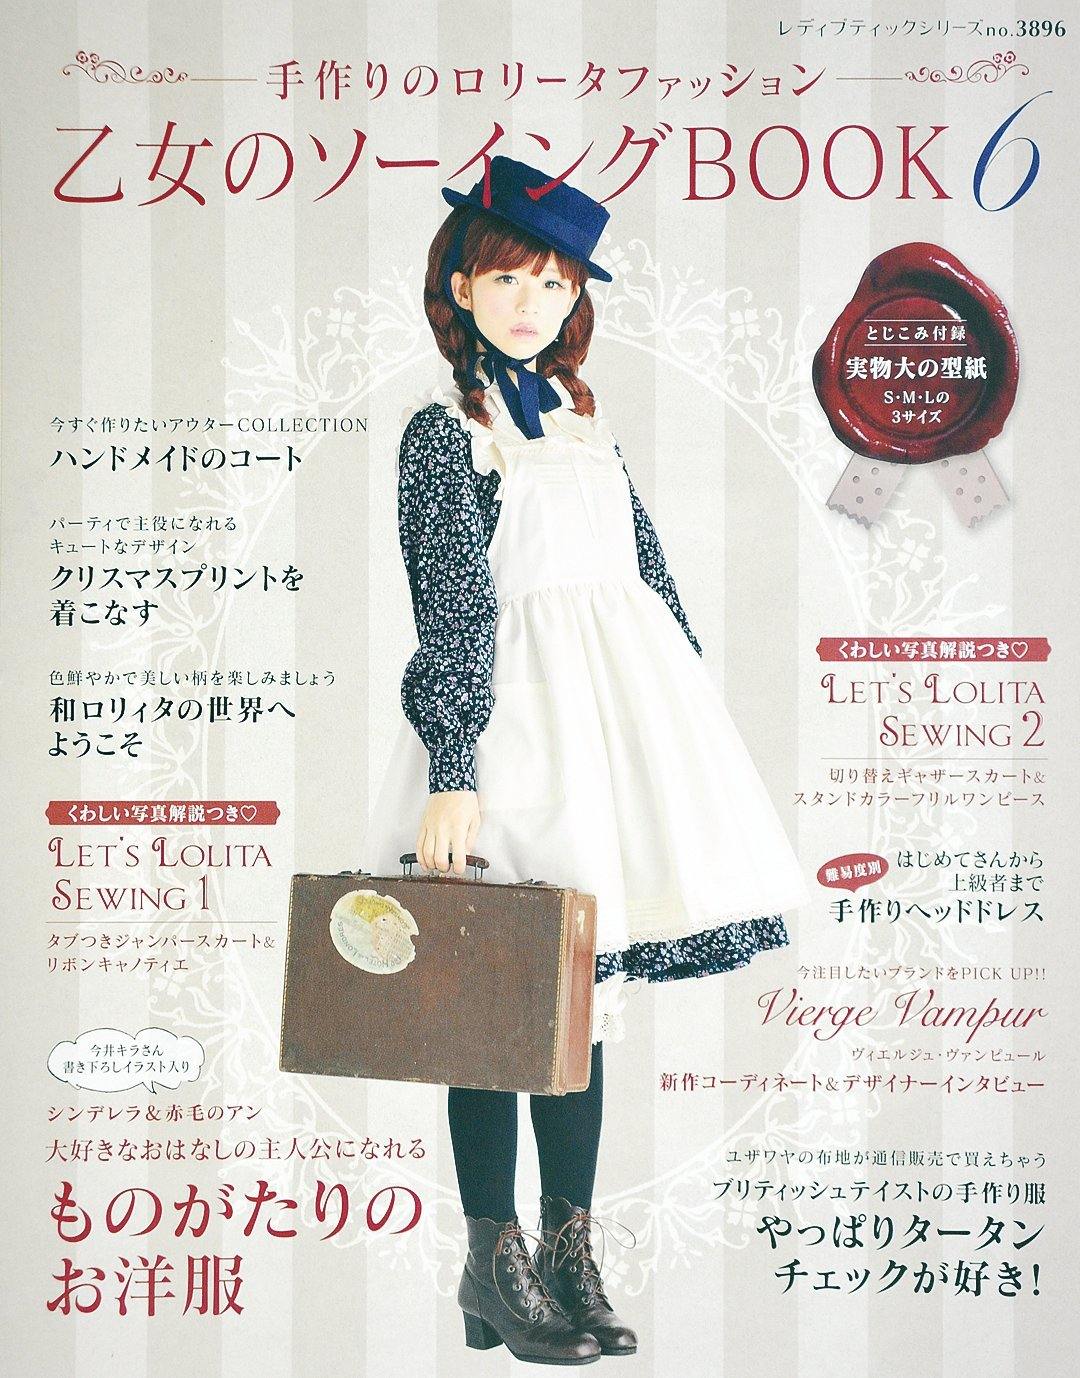 Maiden of sewing BOOK 6